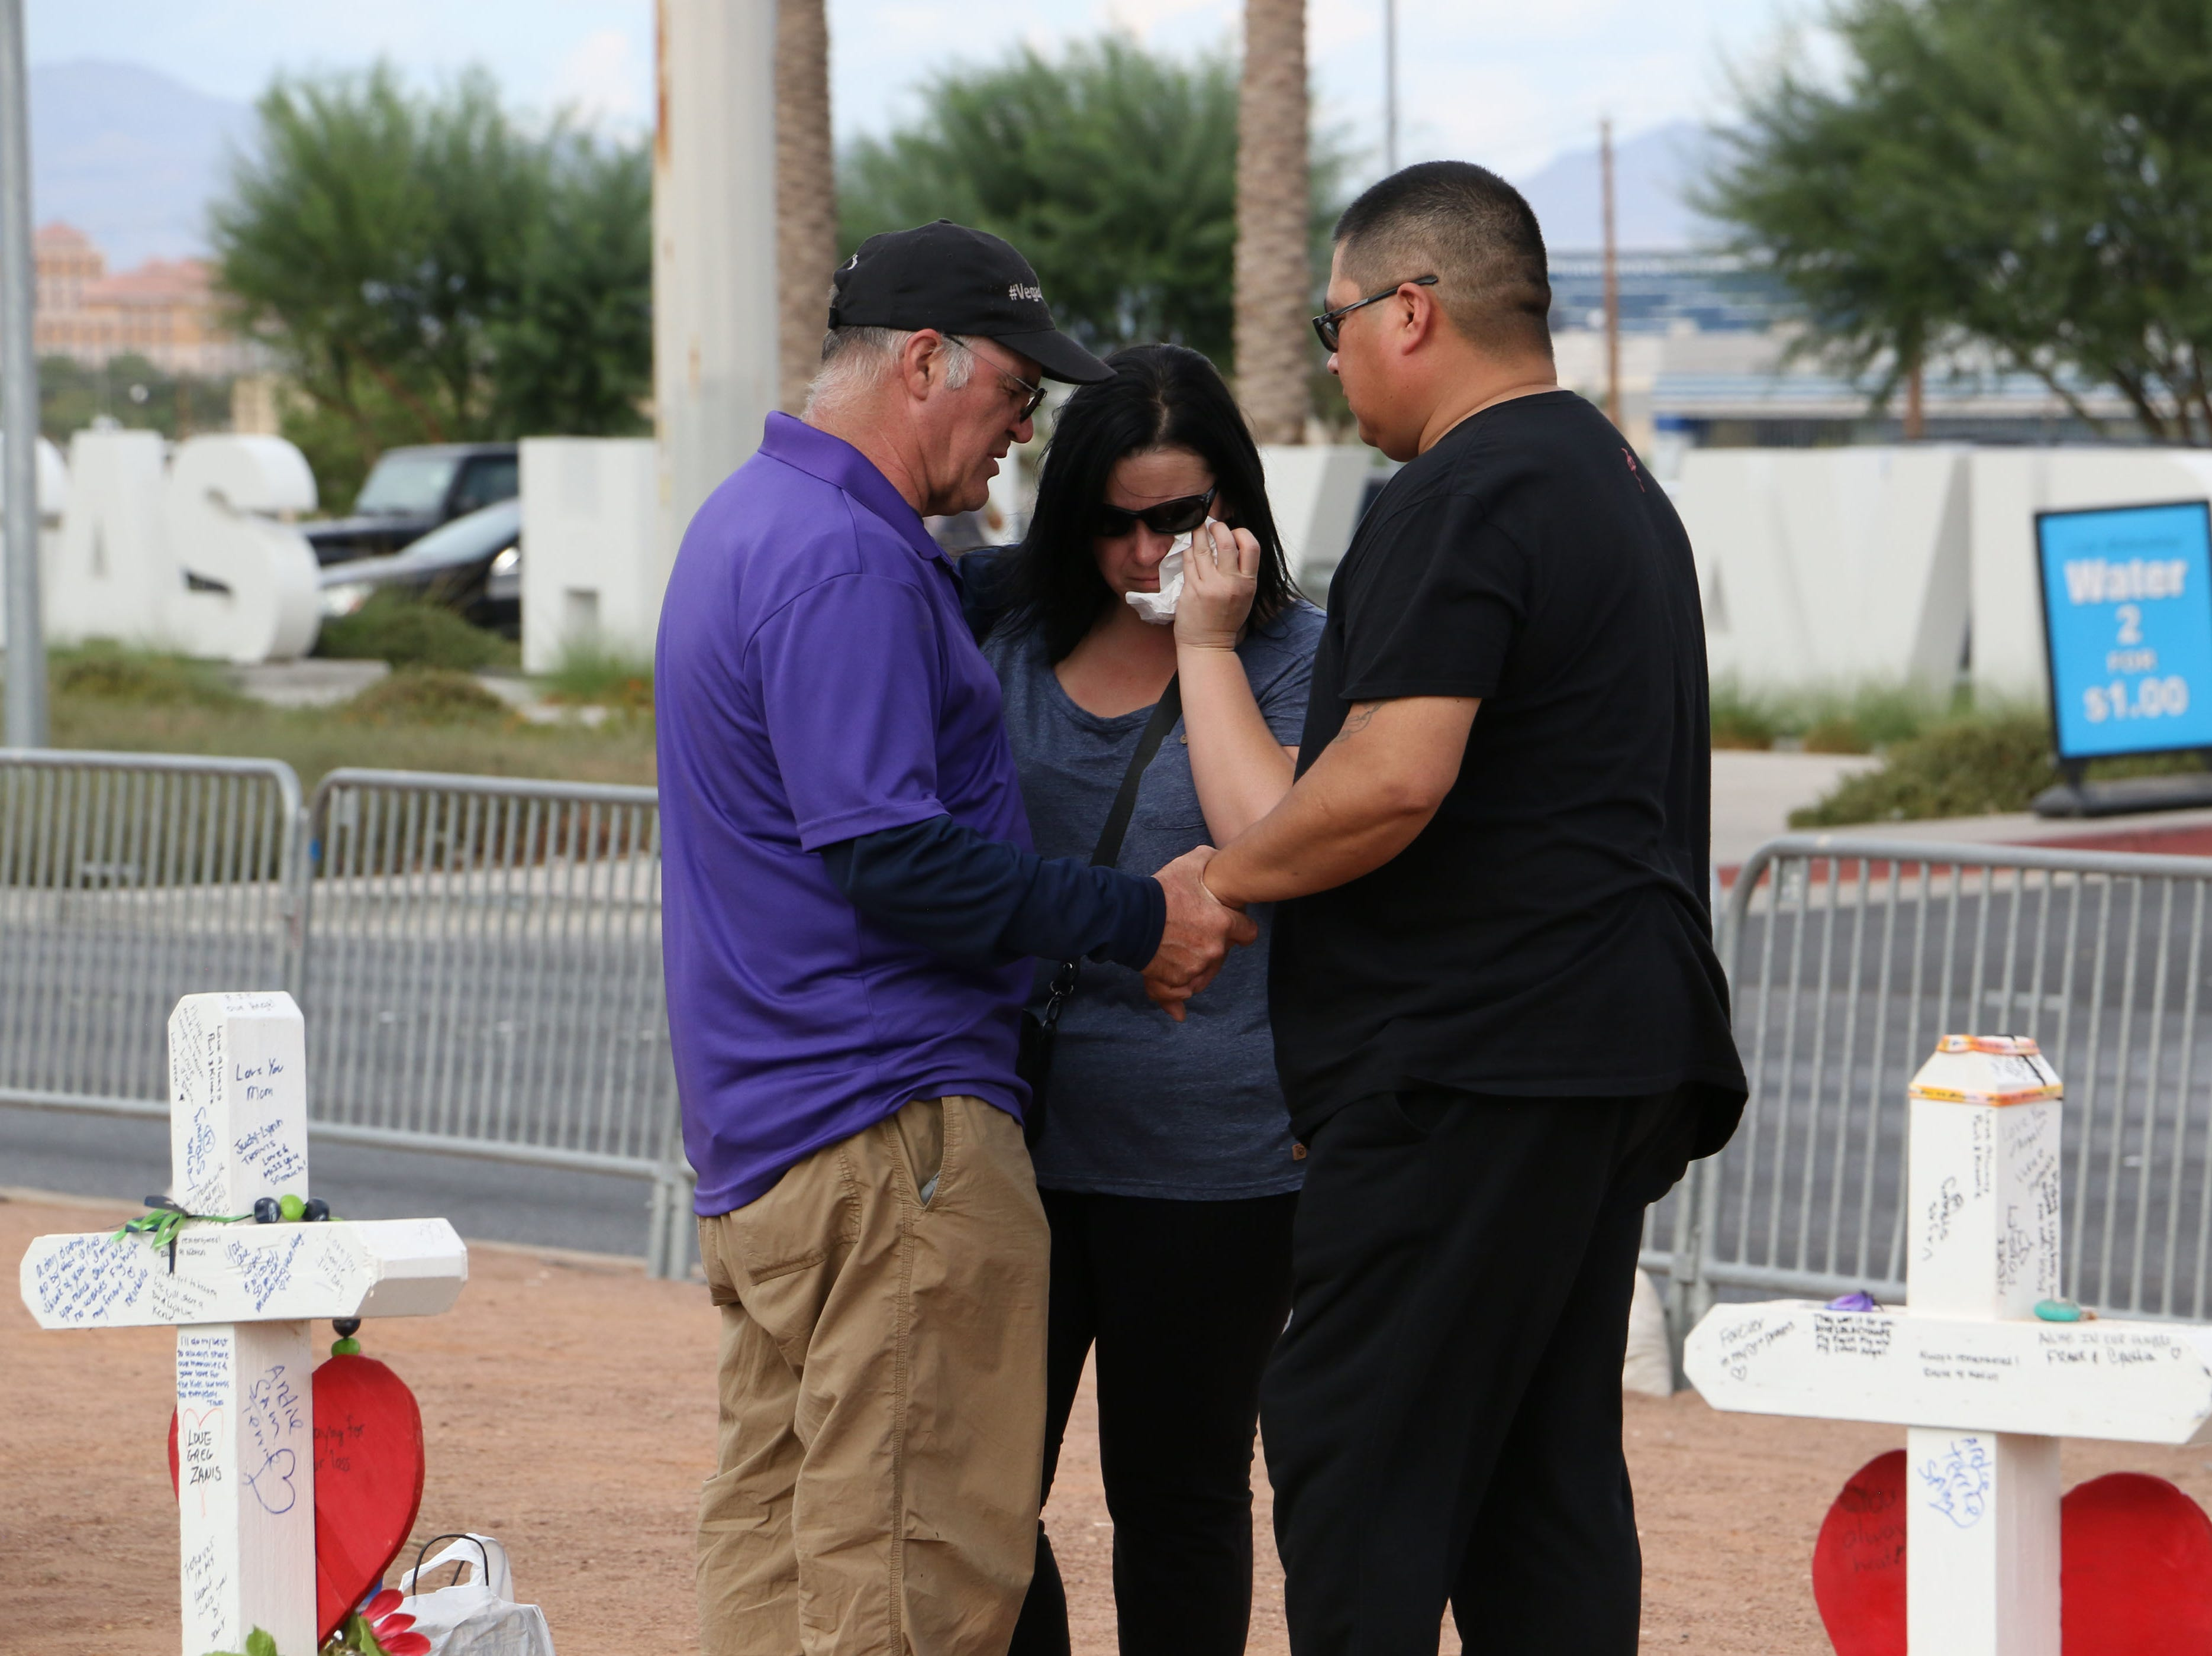 People pray together at a memorial set up next to the welcome to Las Vegas sign as Las Vegas remembers the mass shooting at the Route 91 Harvest Festival one year later on Oct. 1, 2018.